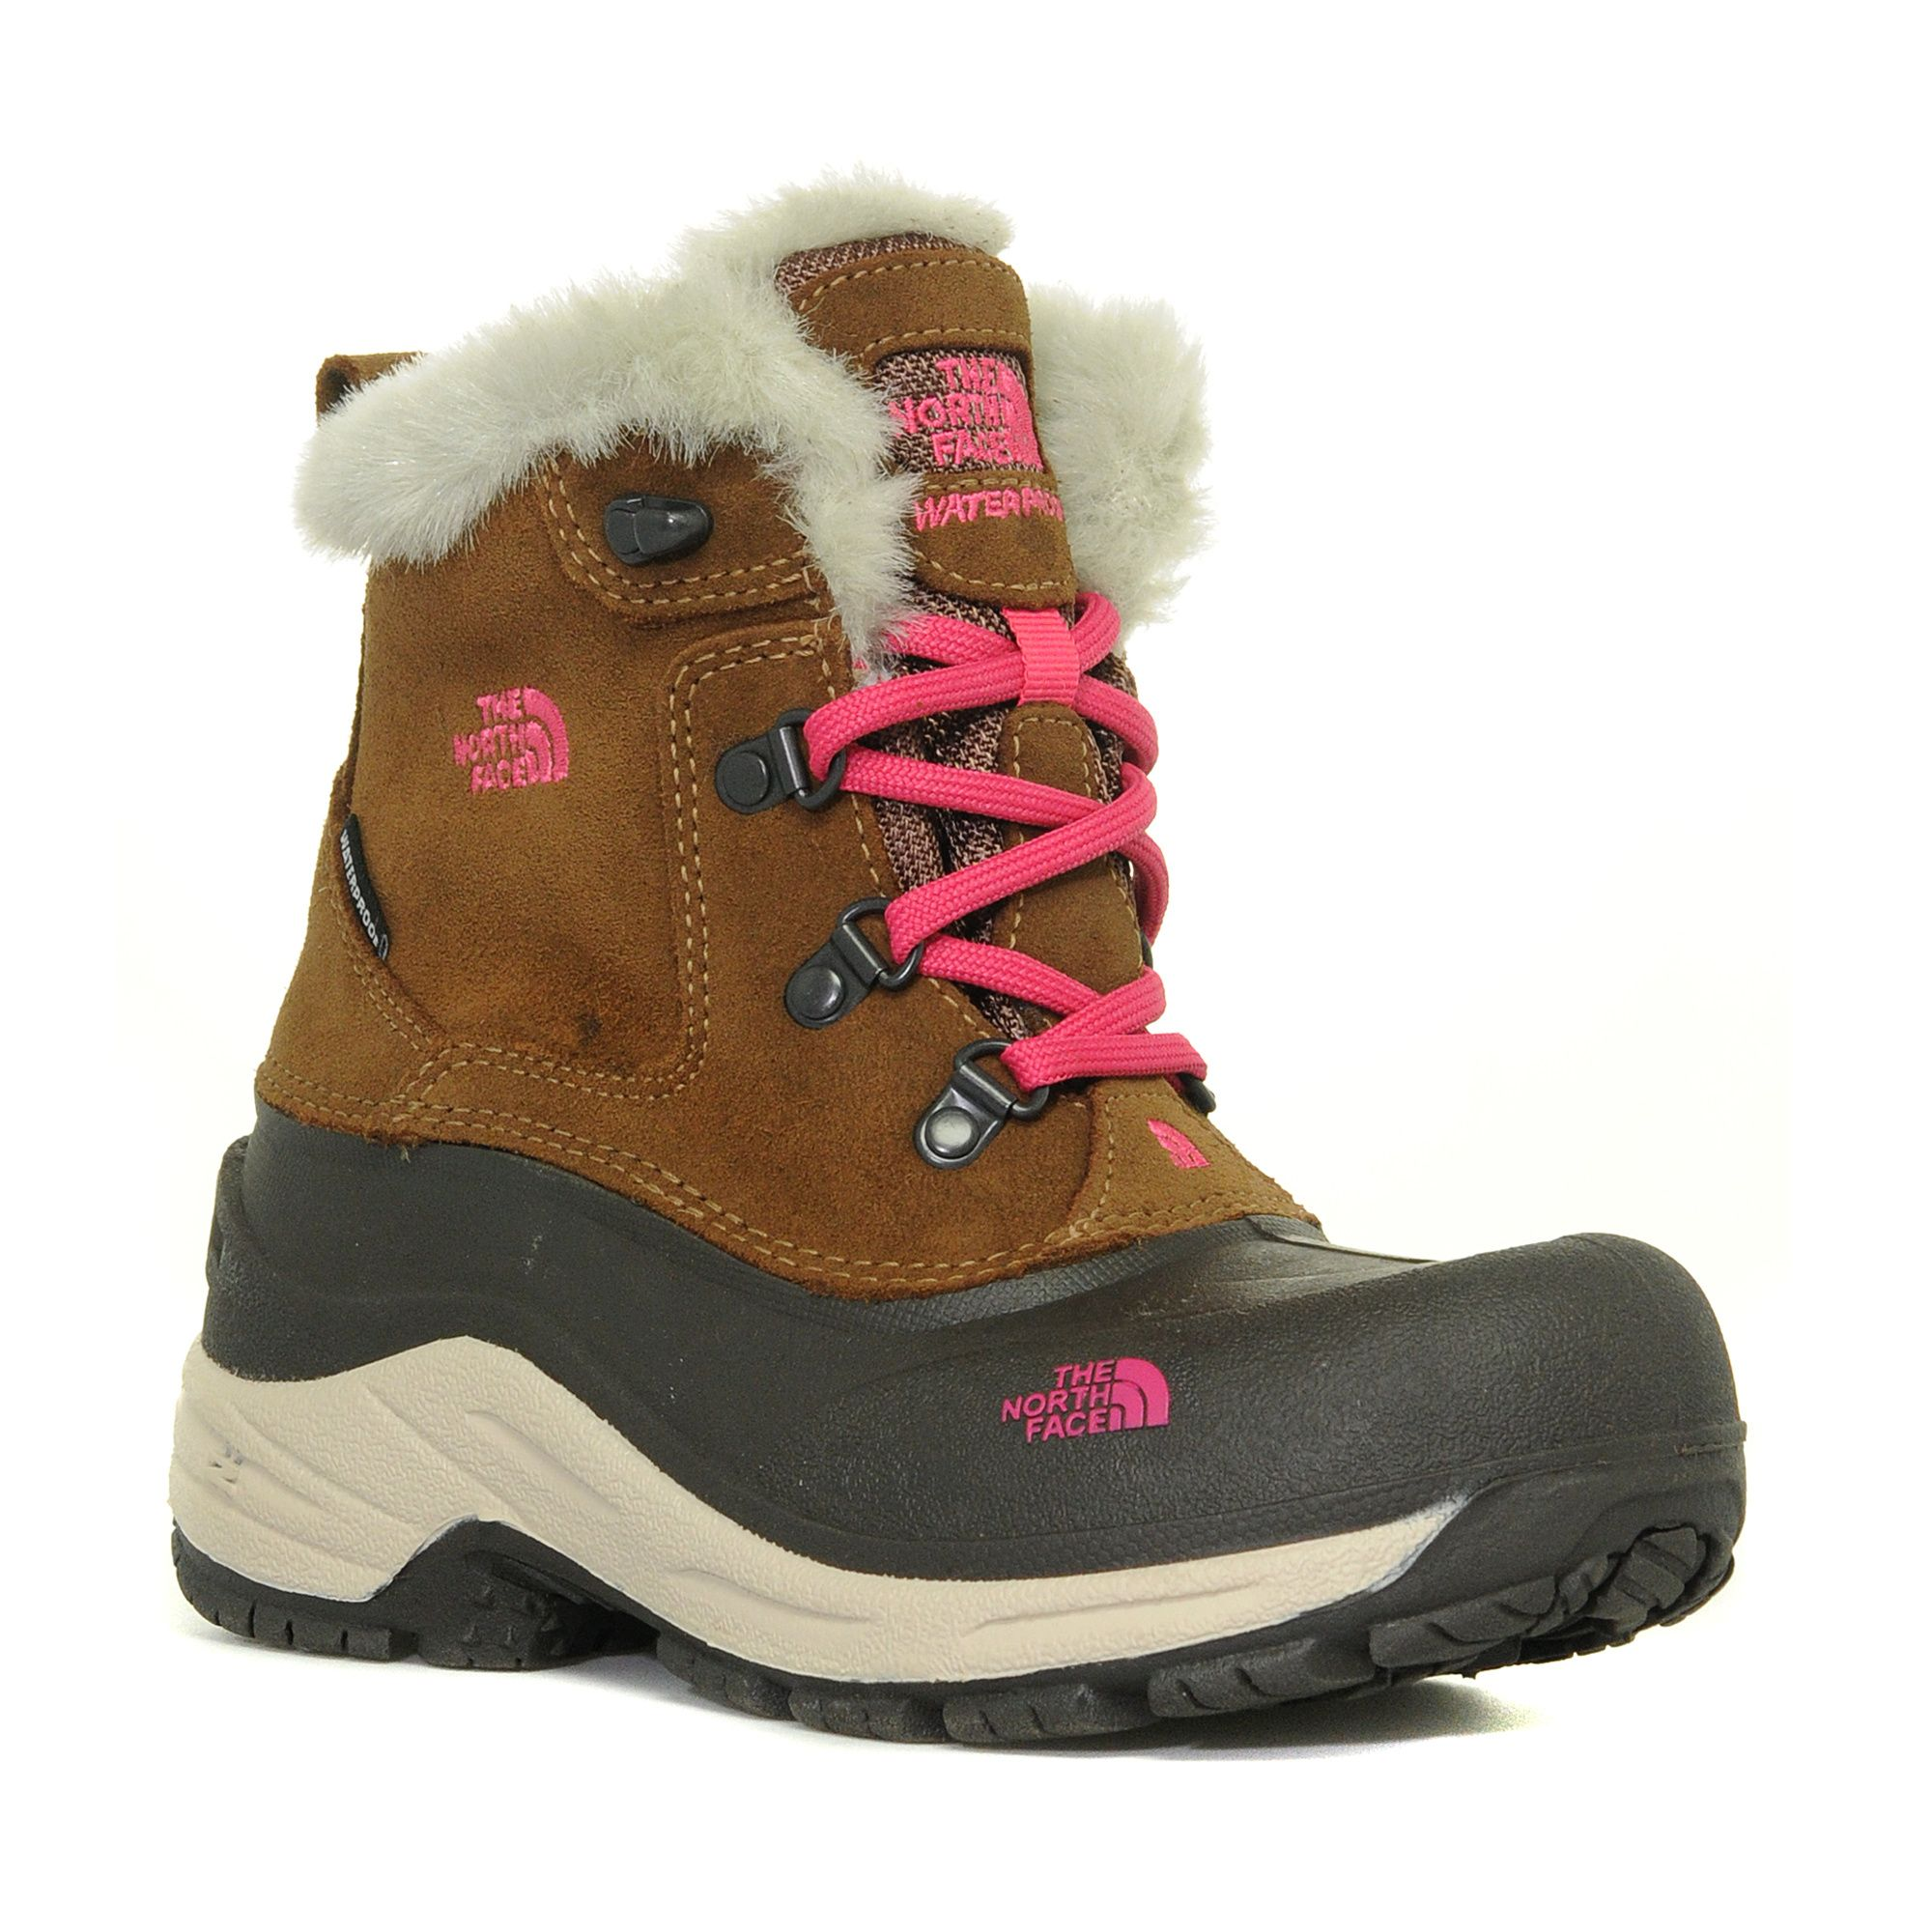 THE NORTH FACE Girl's Mcmurdo Boot